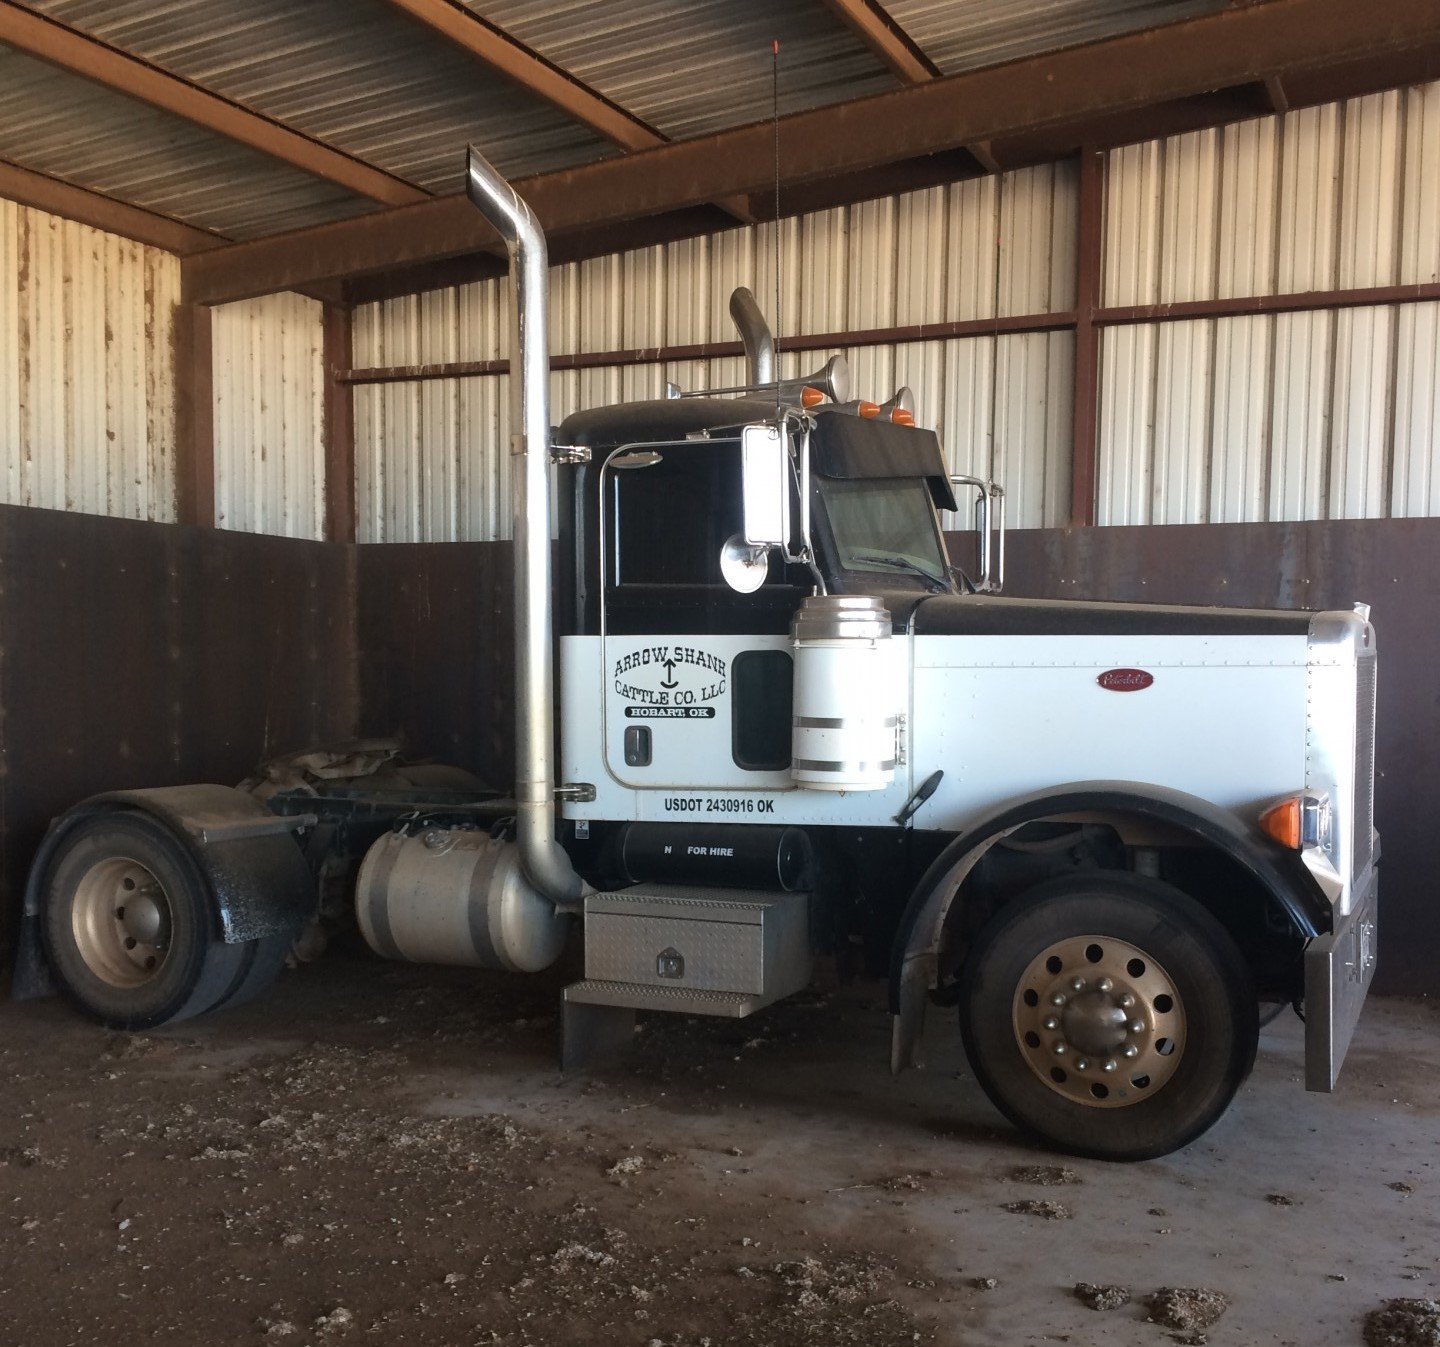 Ranchworldads Trailers >> 2007 379 peterbilt single axle truck